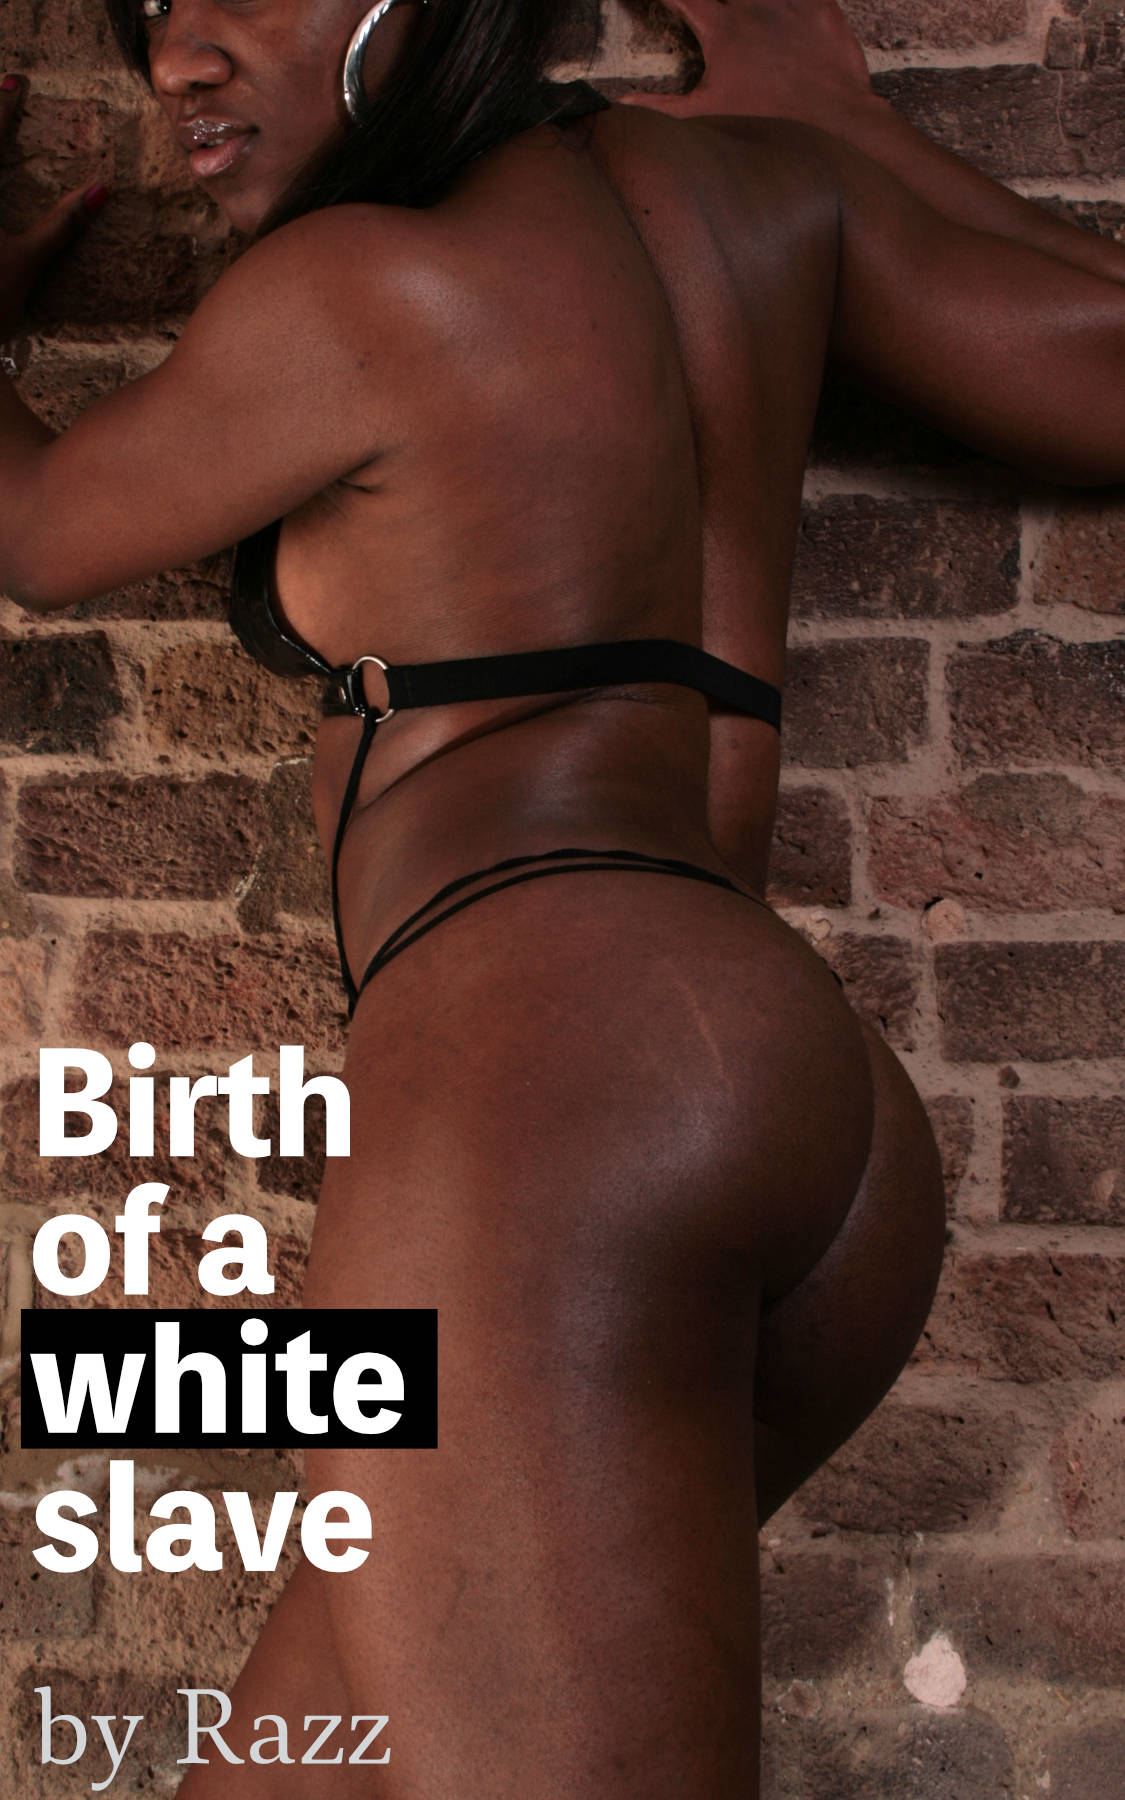 Birth of a White Slave: race play erotica